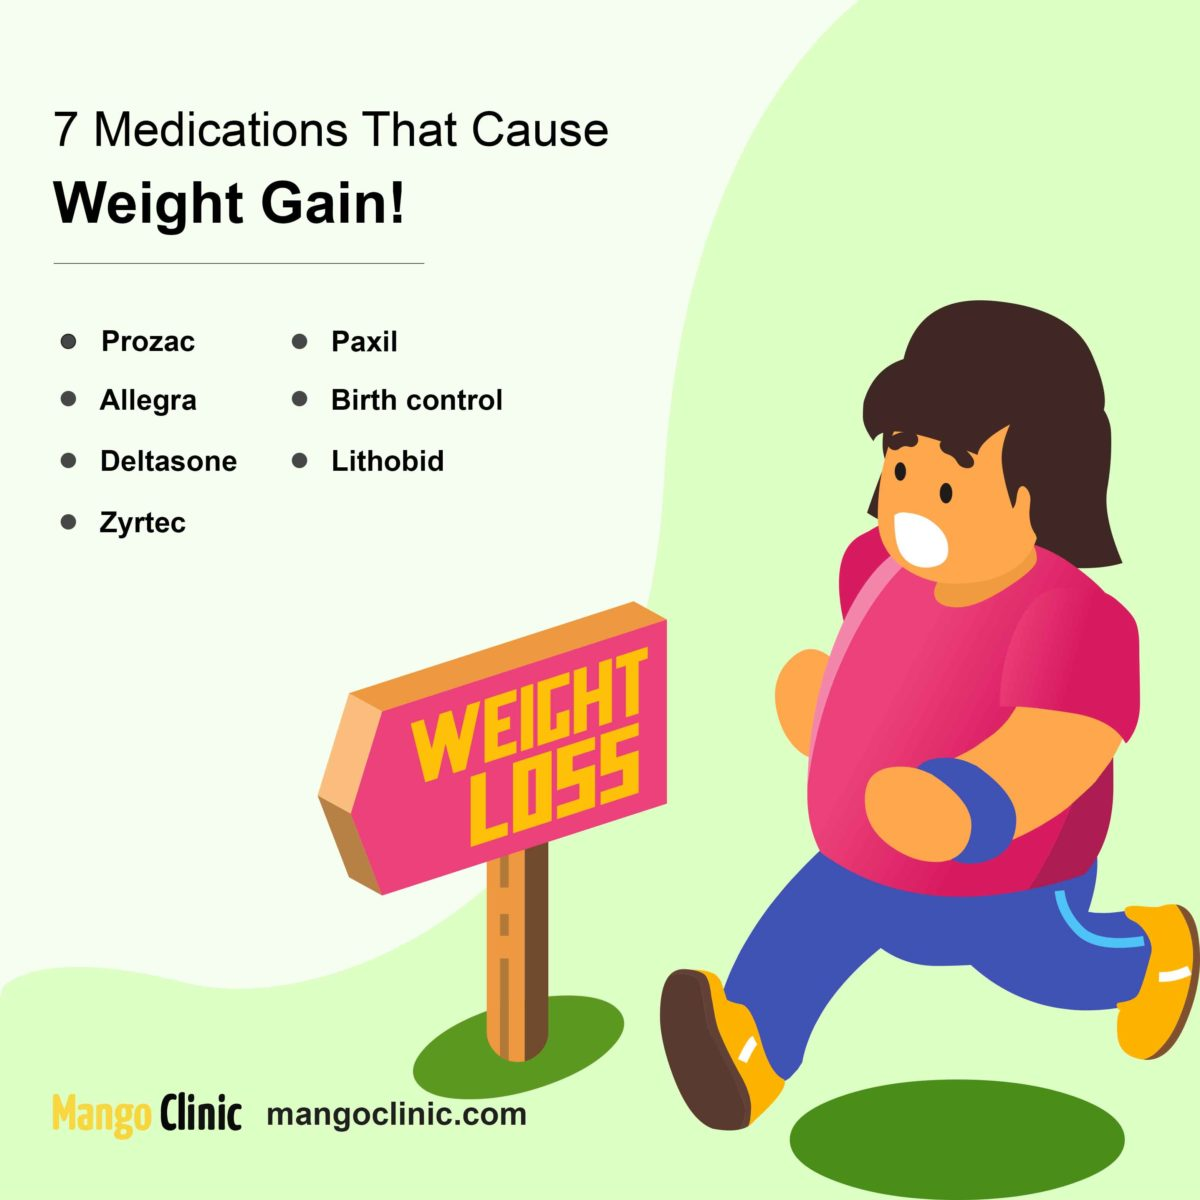 7 medications that cause weight gain